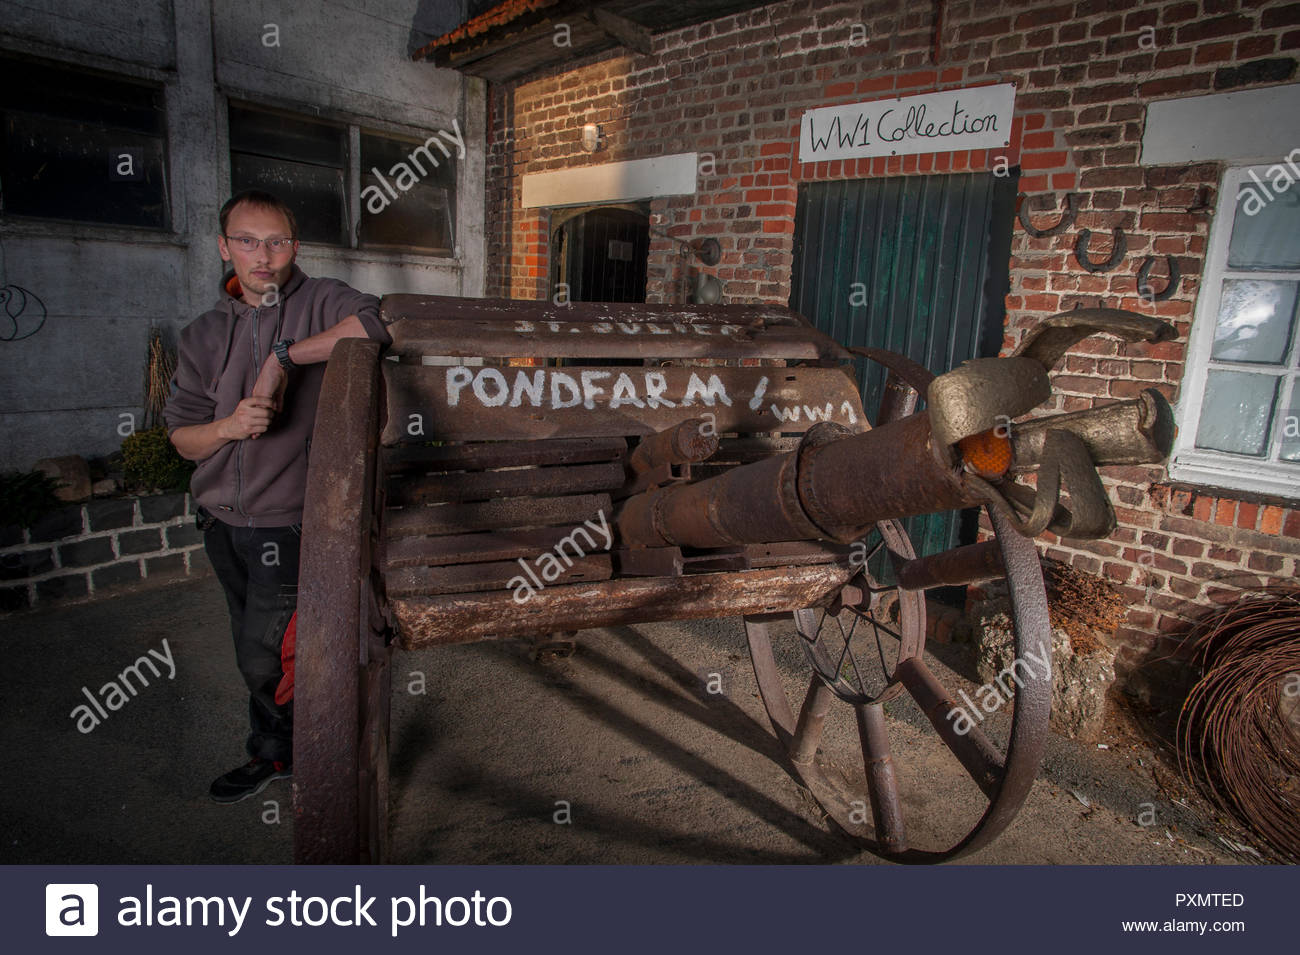 30 year old Stijn Butaye outside his self made WW1 museum at the family farm Pond Farm, Langemark, Belgium. - Stock Image